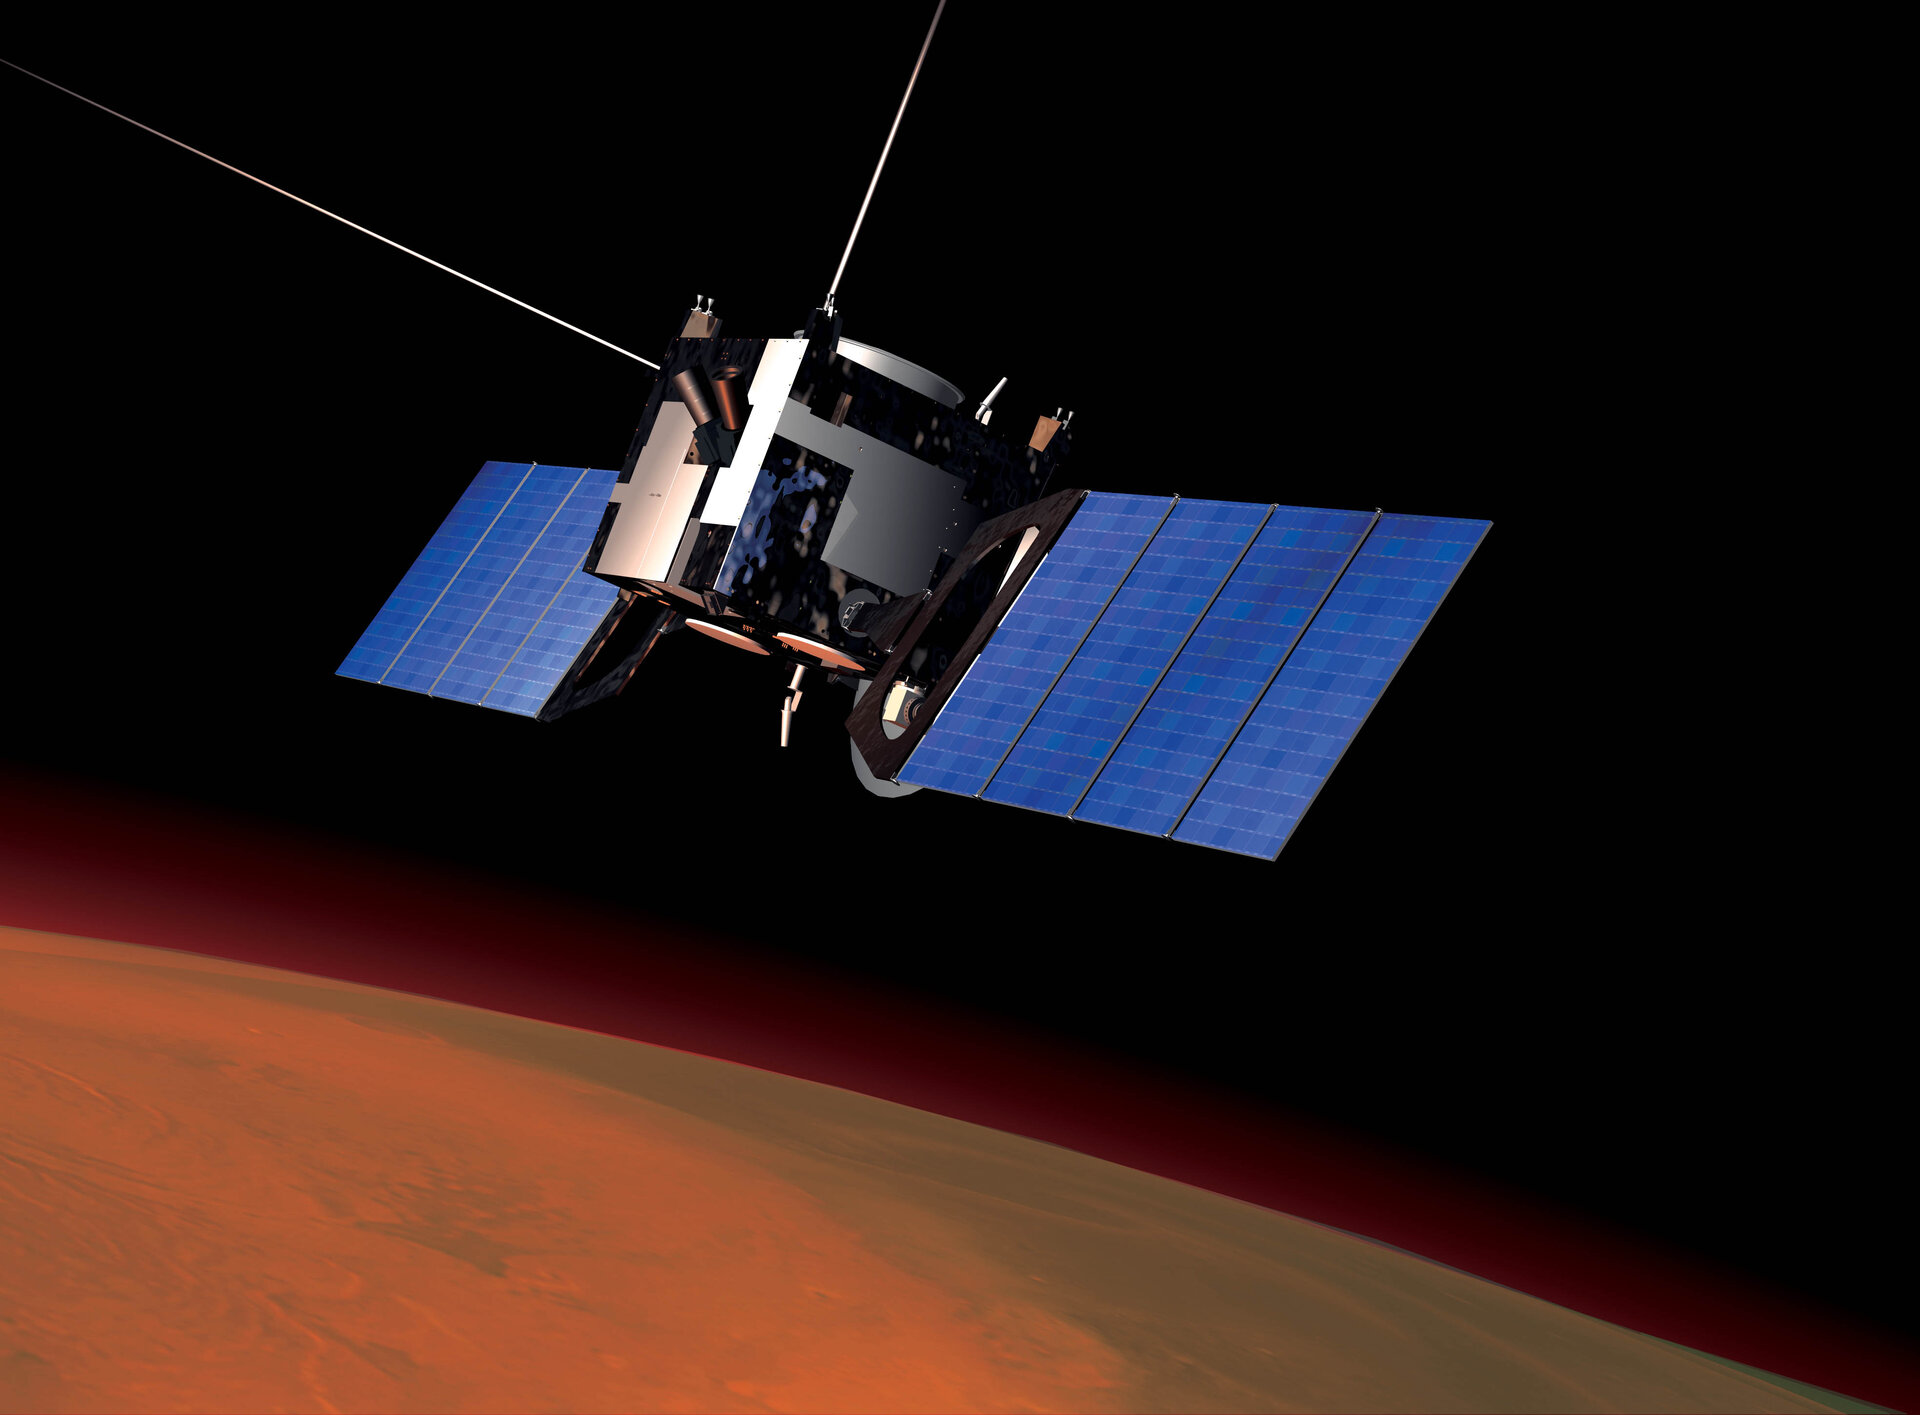 Artist's impression of Mars Express in orbit around Mars